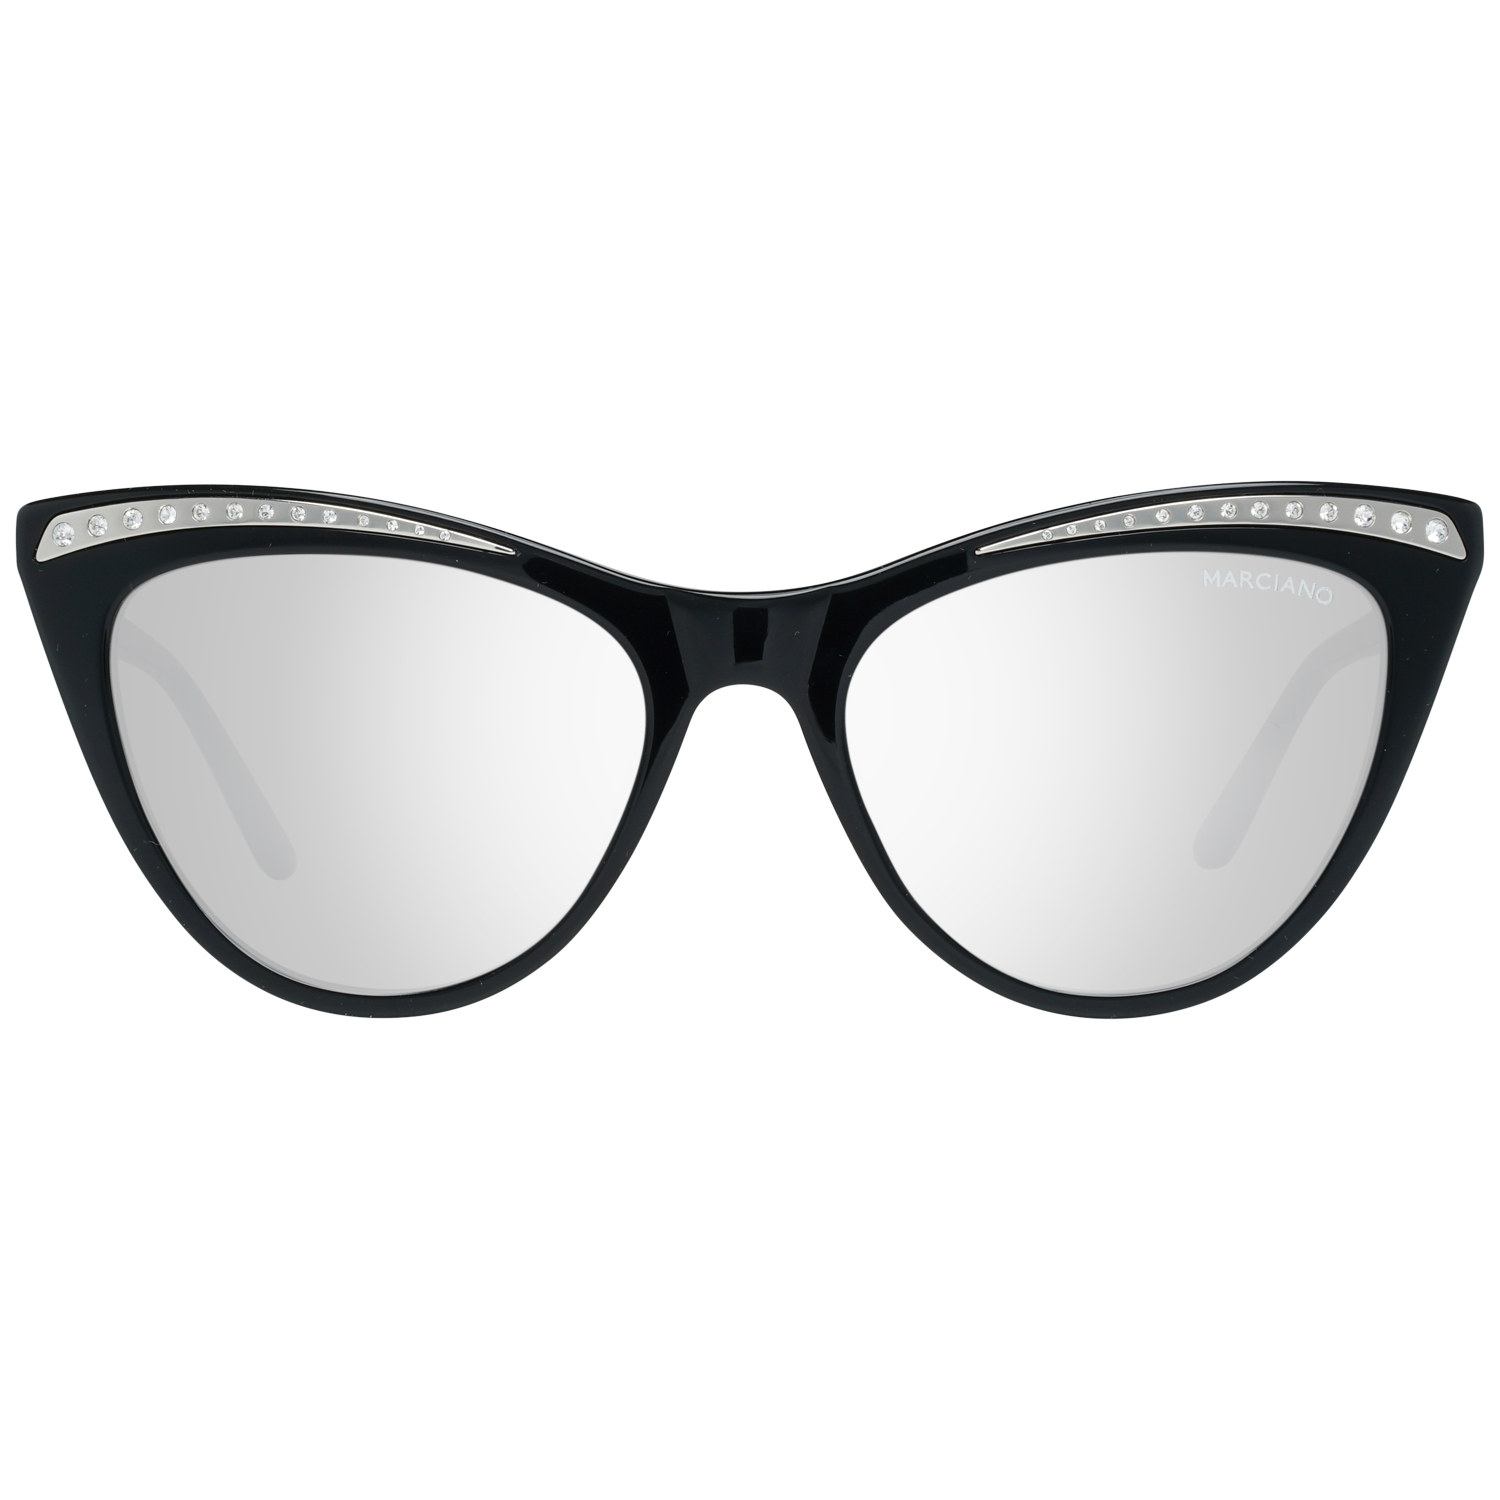 Guess by Marciano Sunglasses GM0793 01P 53 Black